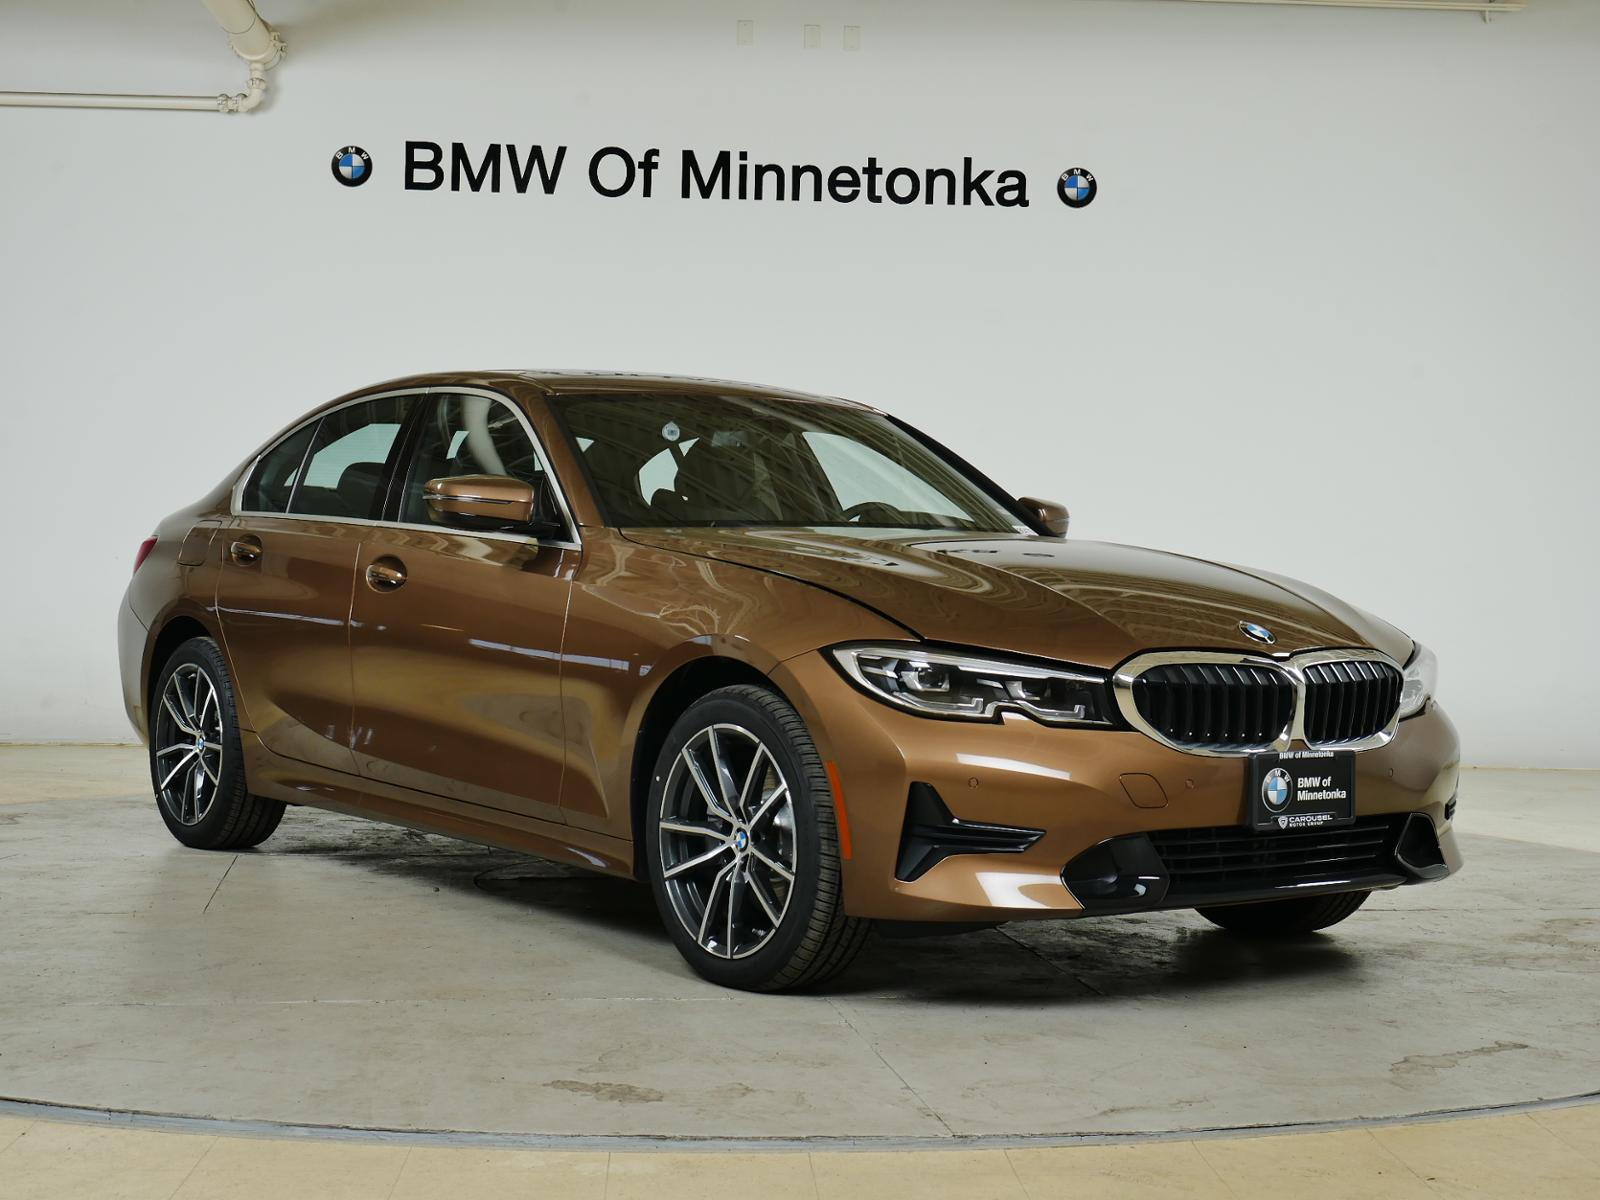 New 2019 Bmw 3 Series Sedan In Minnetonka B5475 Bmw Of Minnetonka